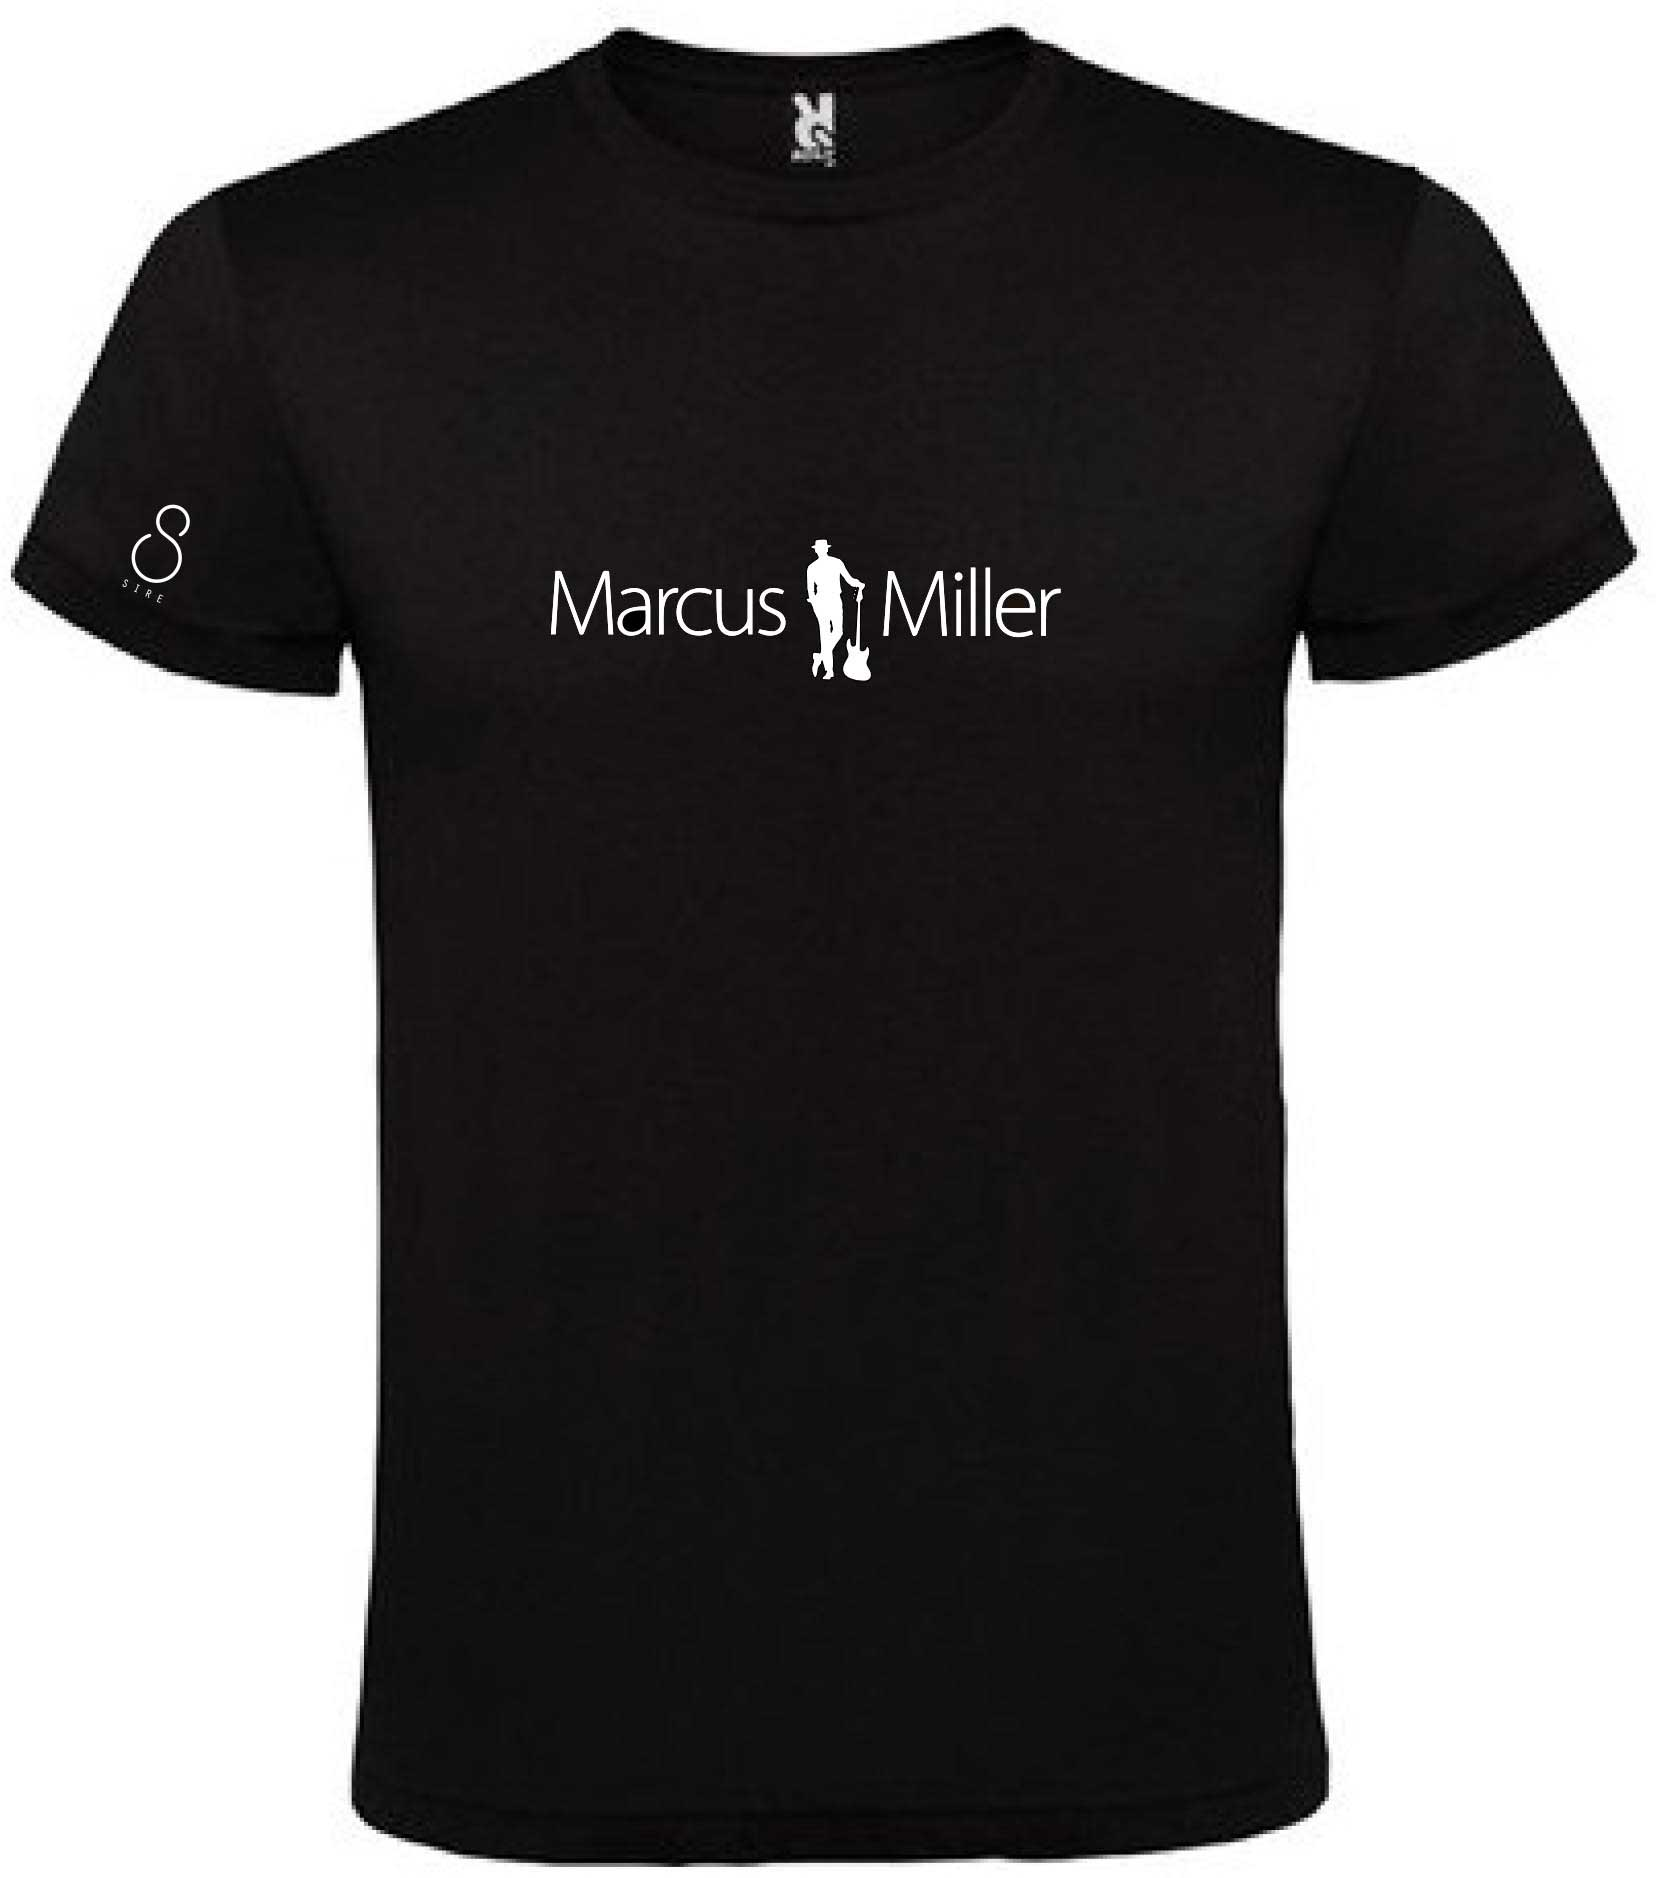 SIRE BY MARCUS MILLER CAMISETA MARCUS MILLER TALLA L